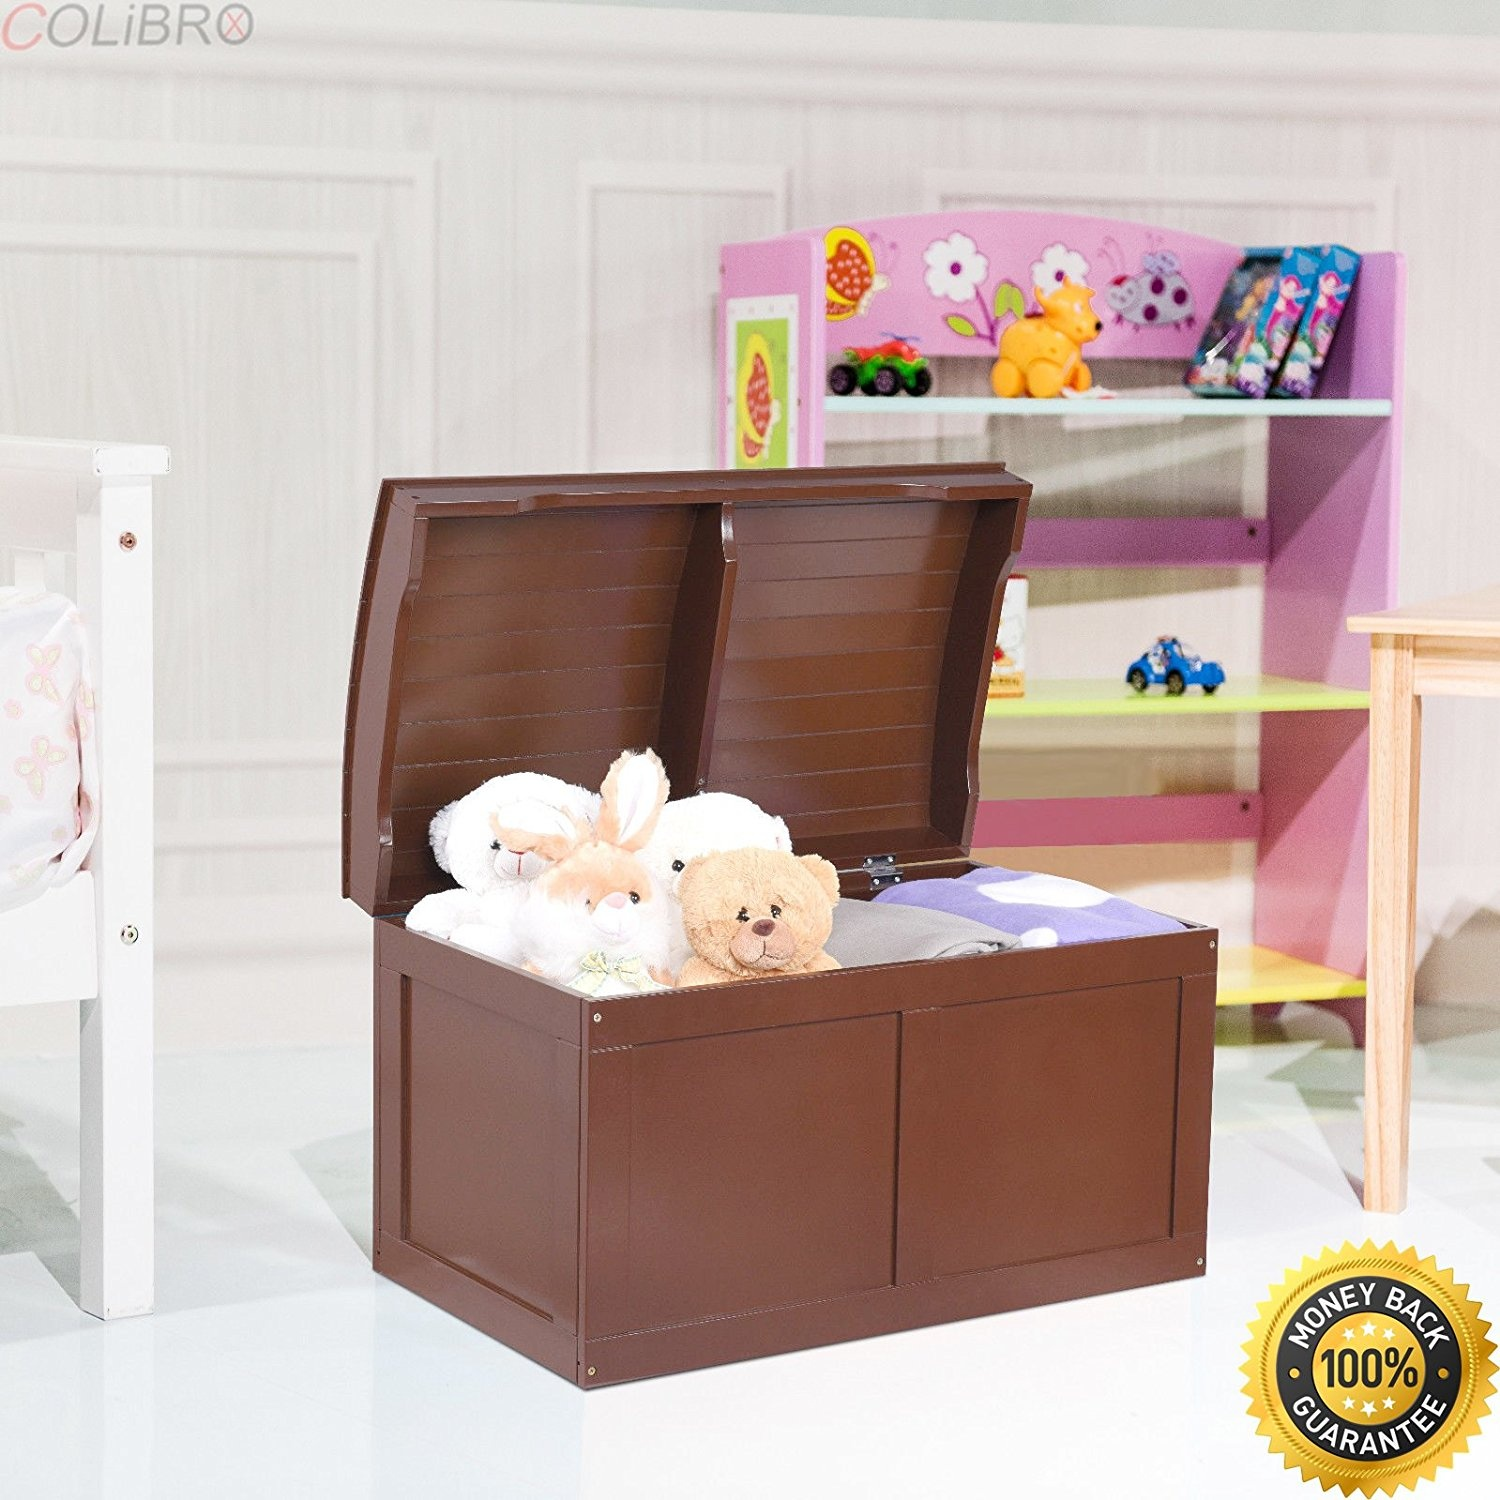 kids toy storage furniture. COLIBROX--Kids Toy Box Storage Barrel Bins Chest Wood Children Organiser Bedroom Playroom. Organiser. Furniture. Walmart In Kids Furniture